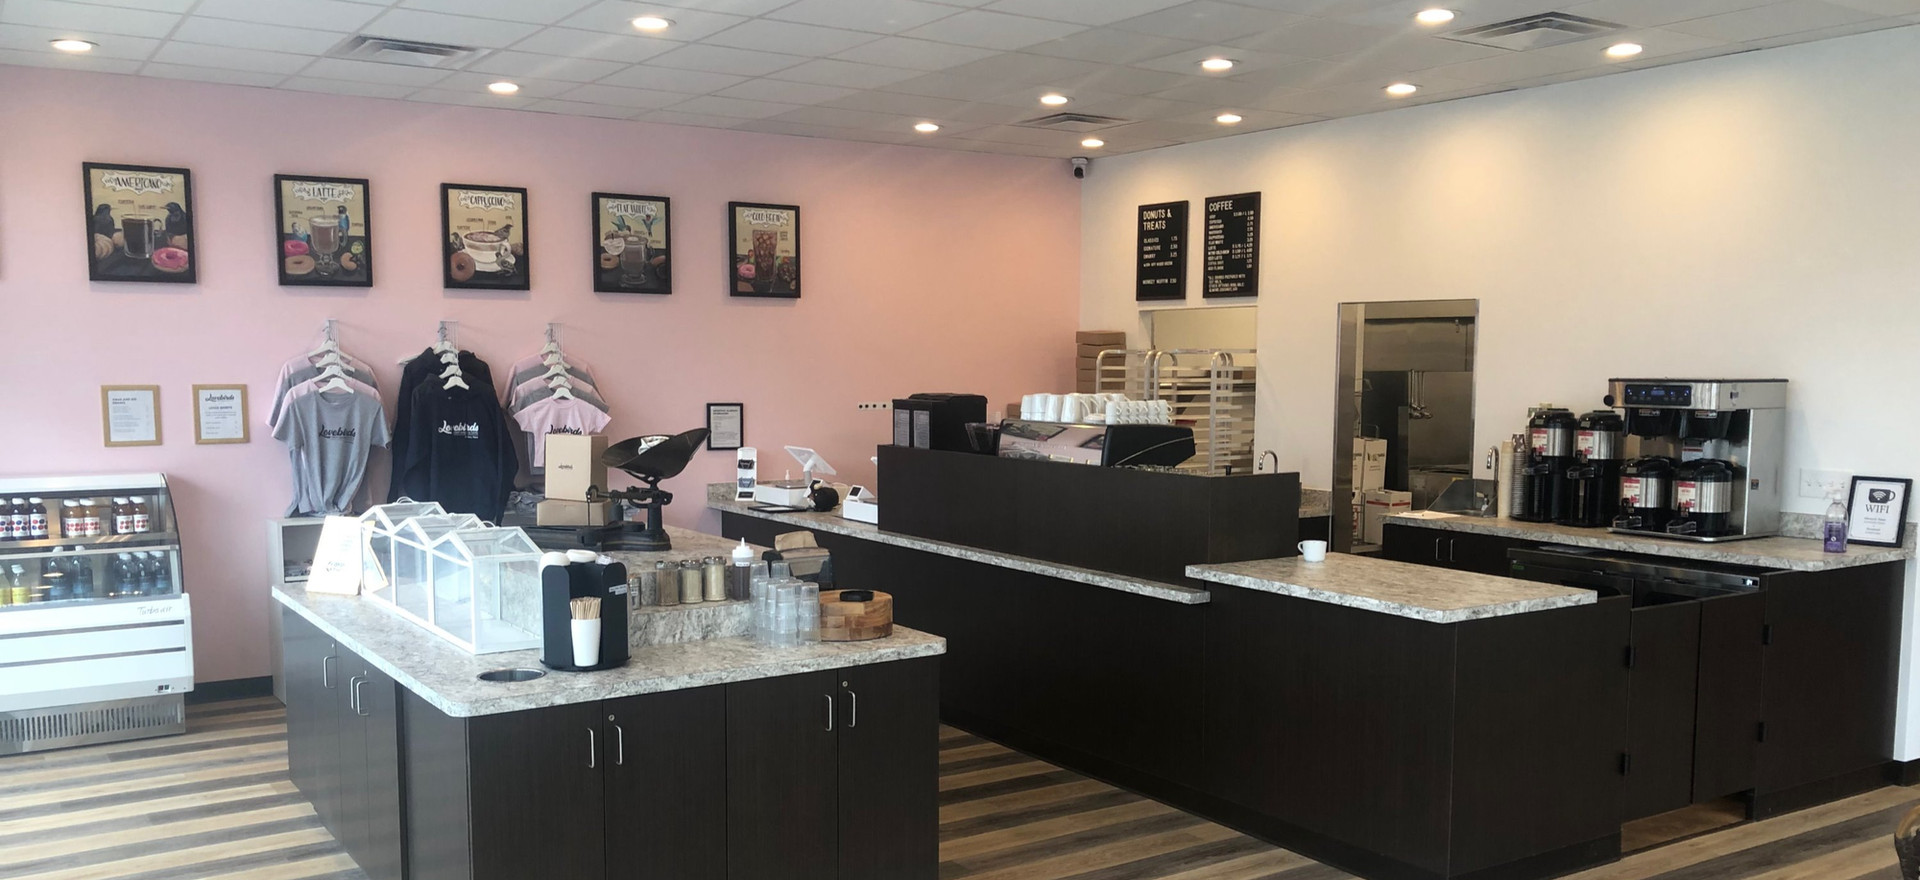 Ready for their Grand Opening at Lovebirds Donuts - Kittery, Maine